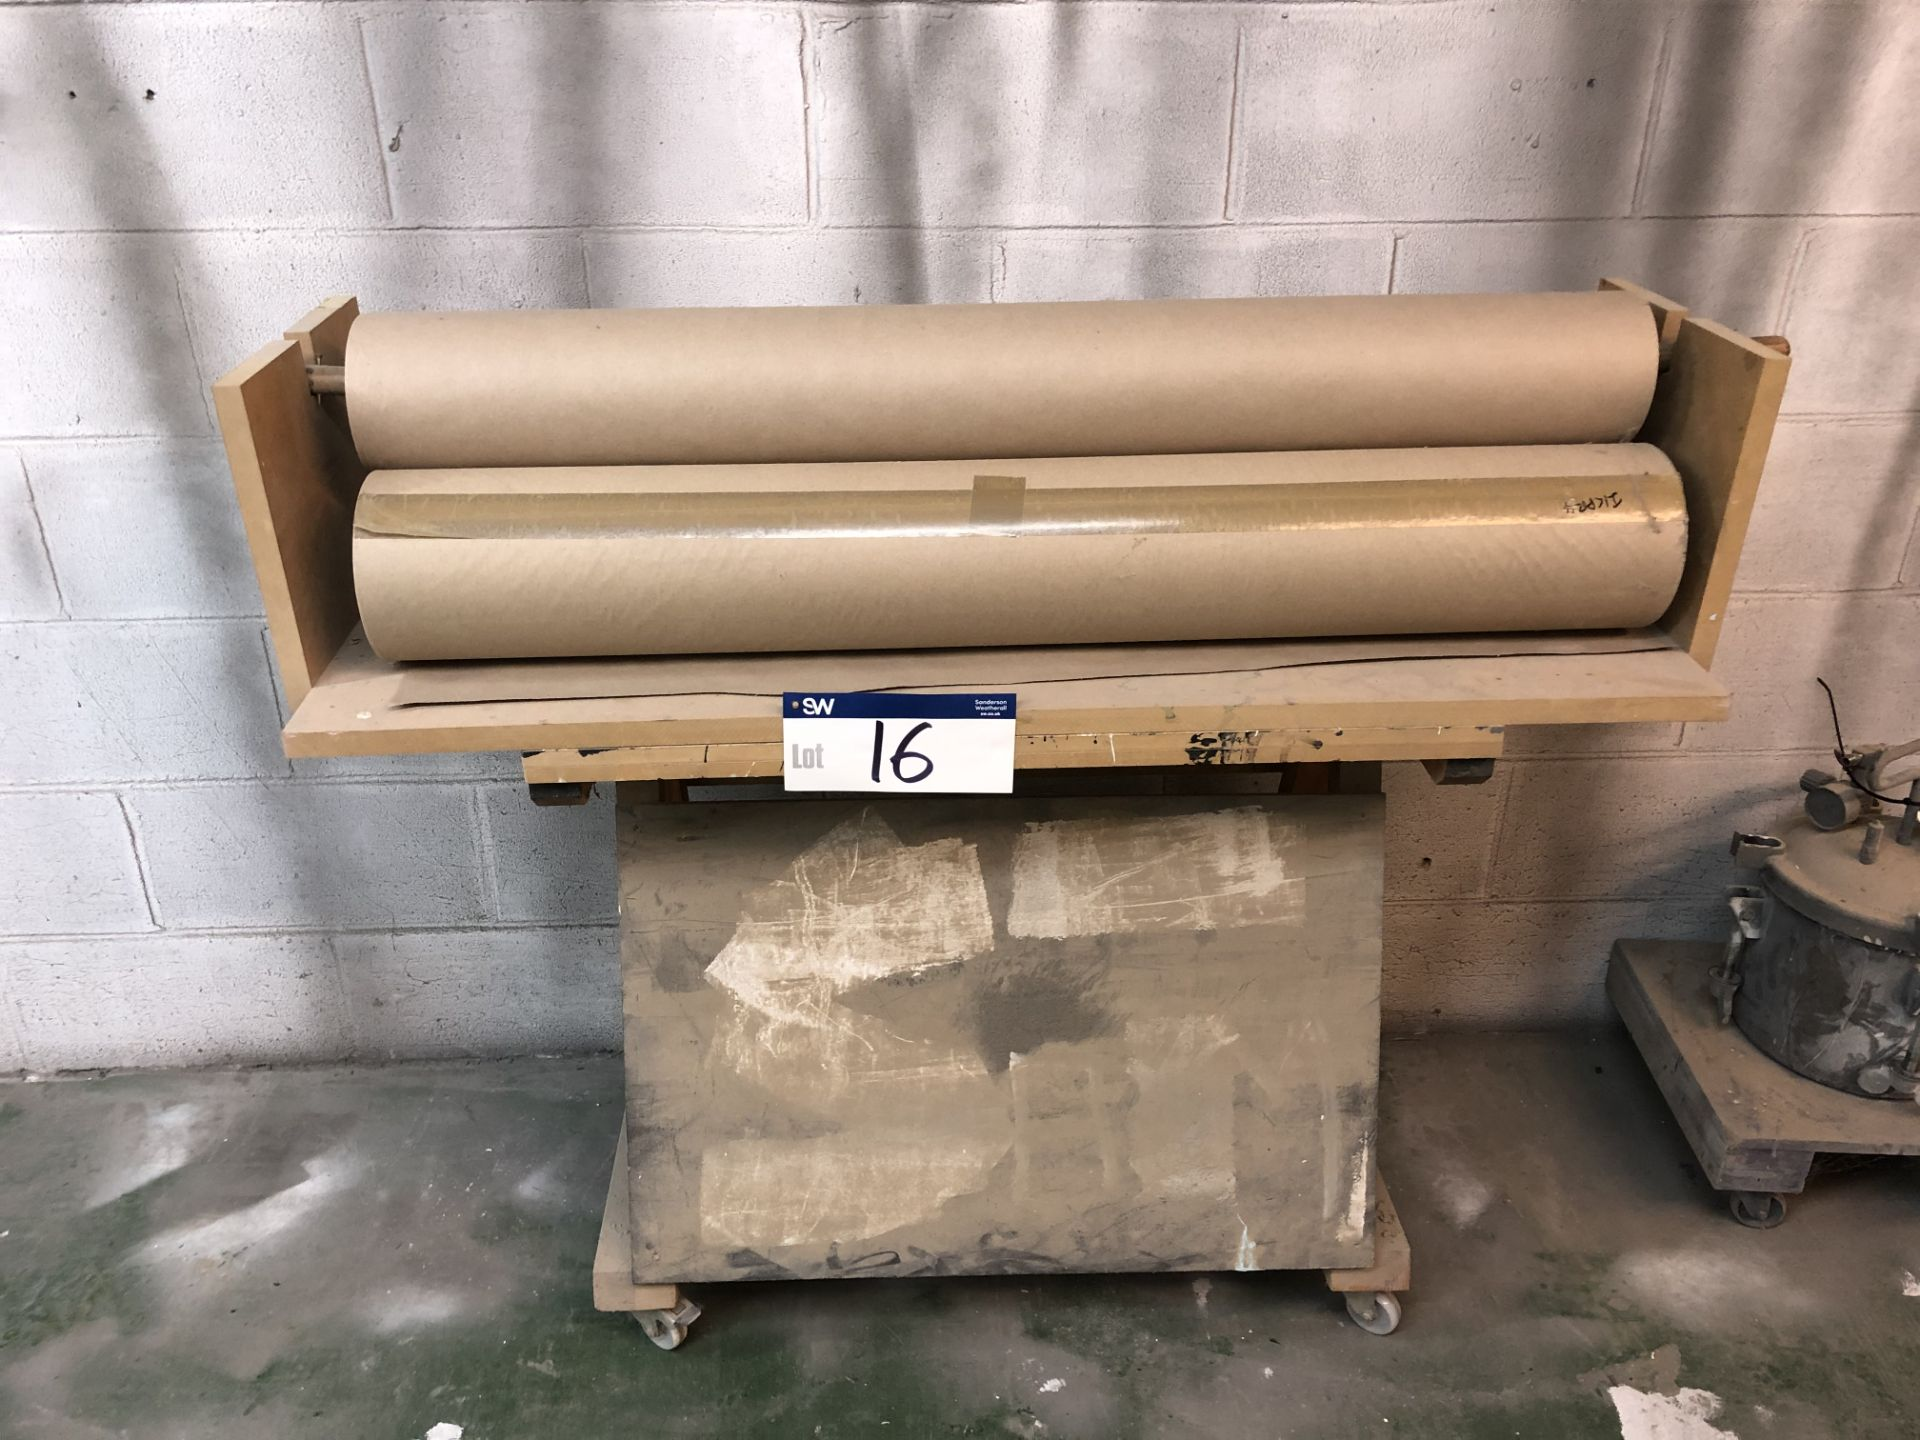 Lot 16 - Masking Paper Reels and Stand